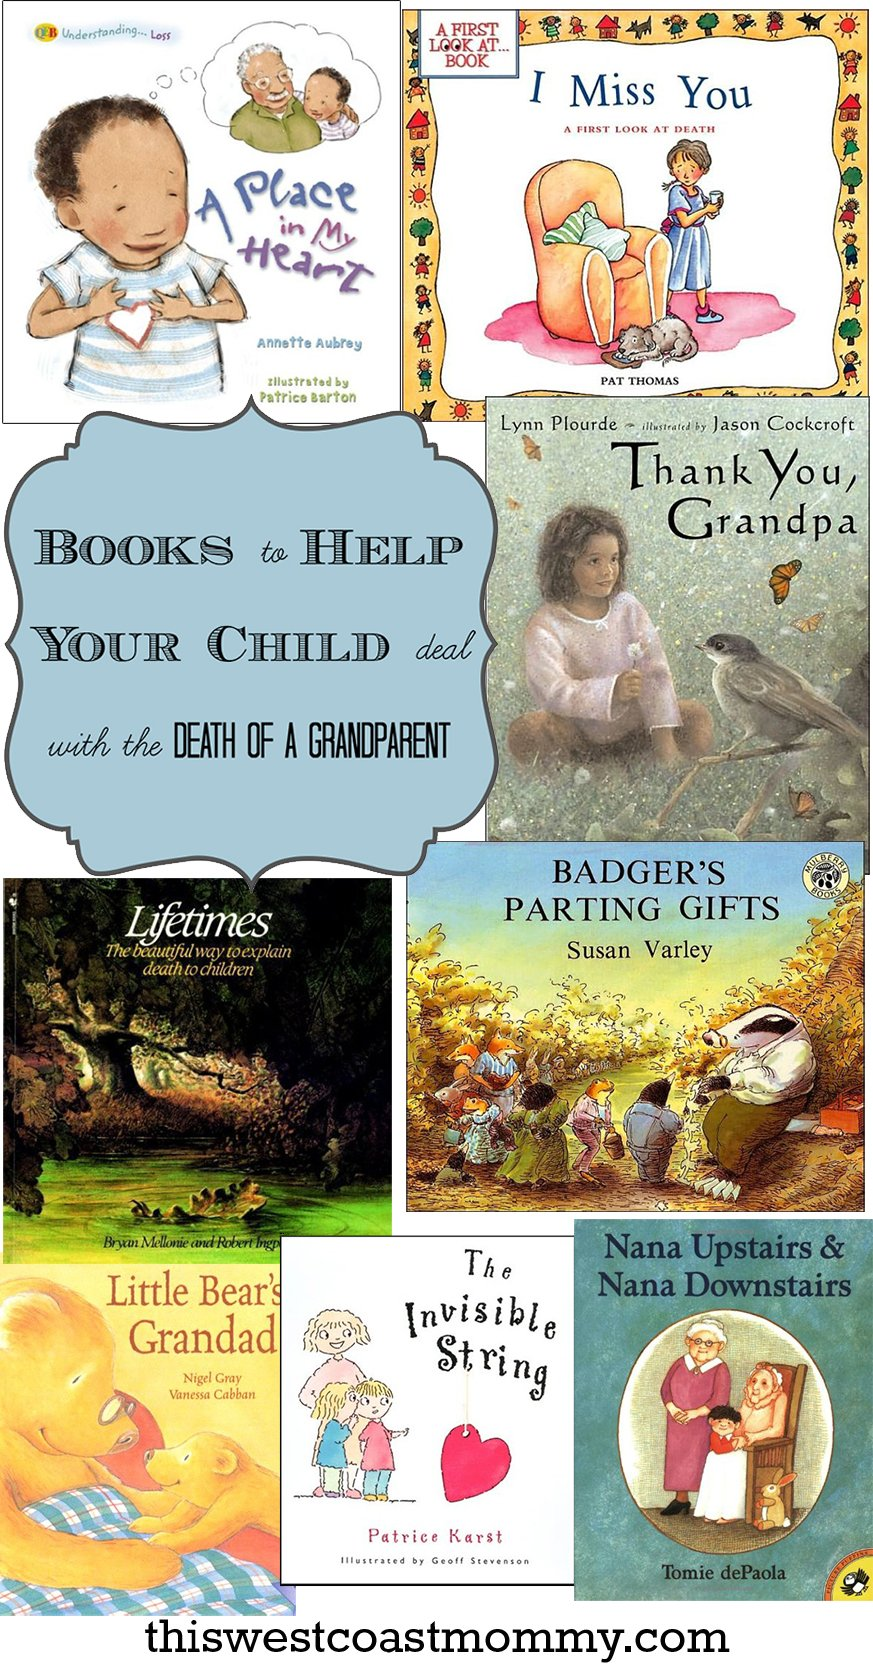 Books to help your child deal with the death of a grandparent this books to help your child deal with the death of a grandparent fandeluxe Images